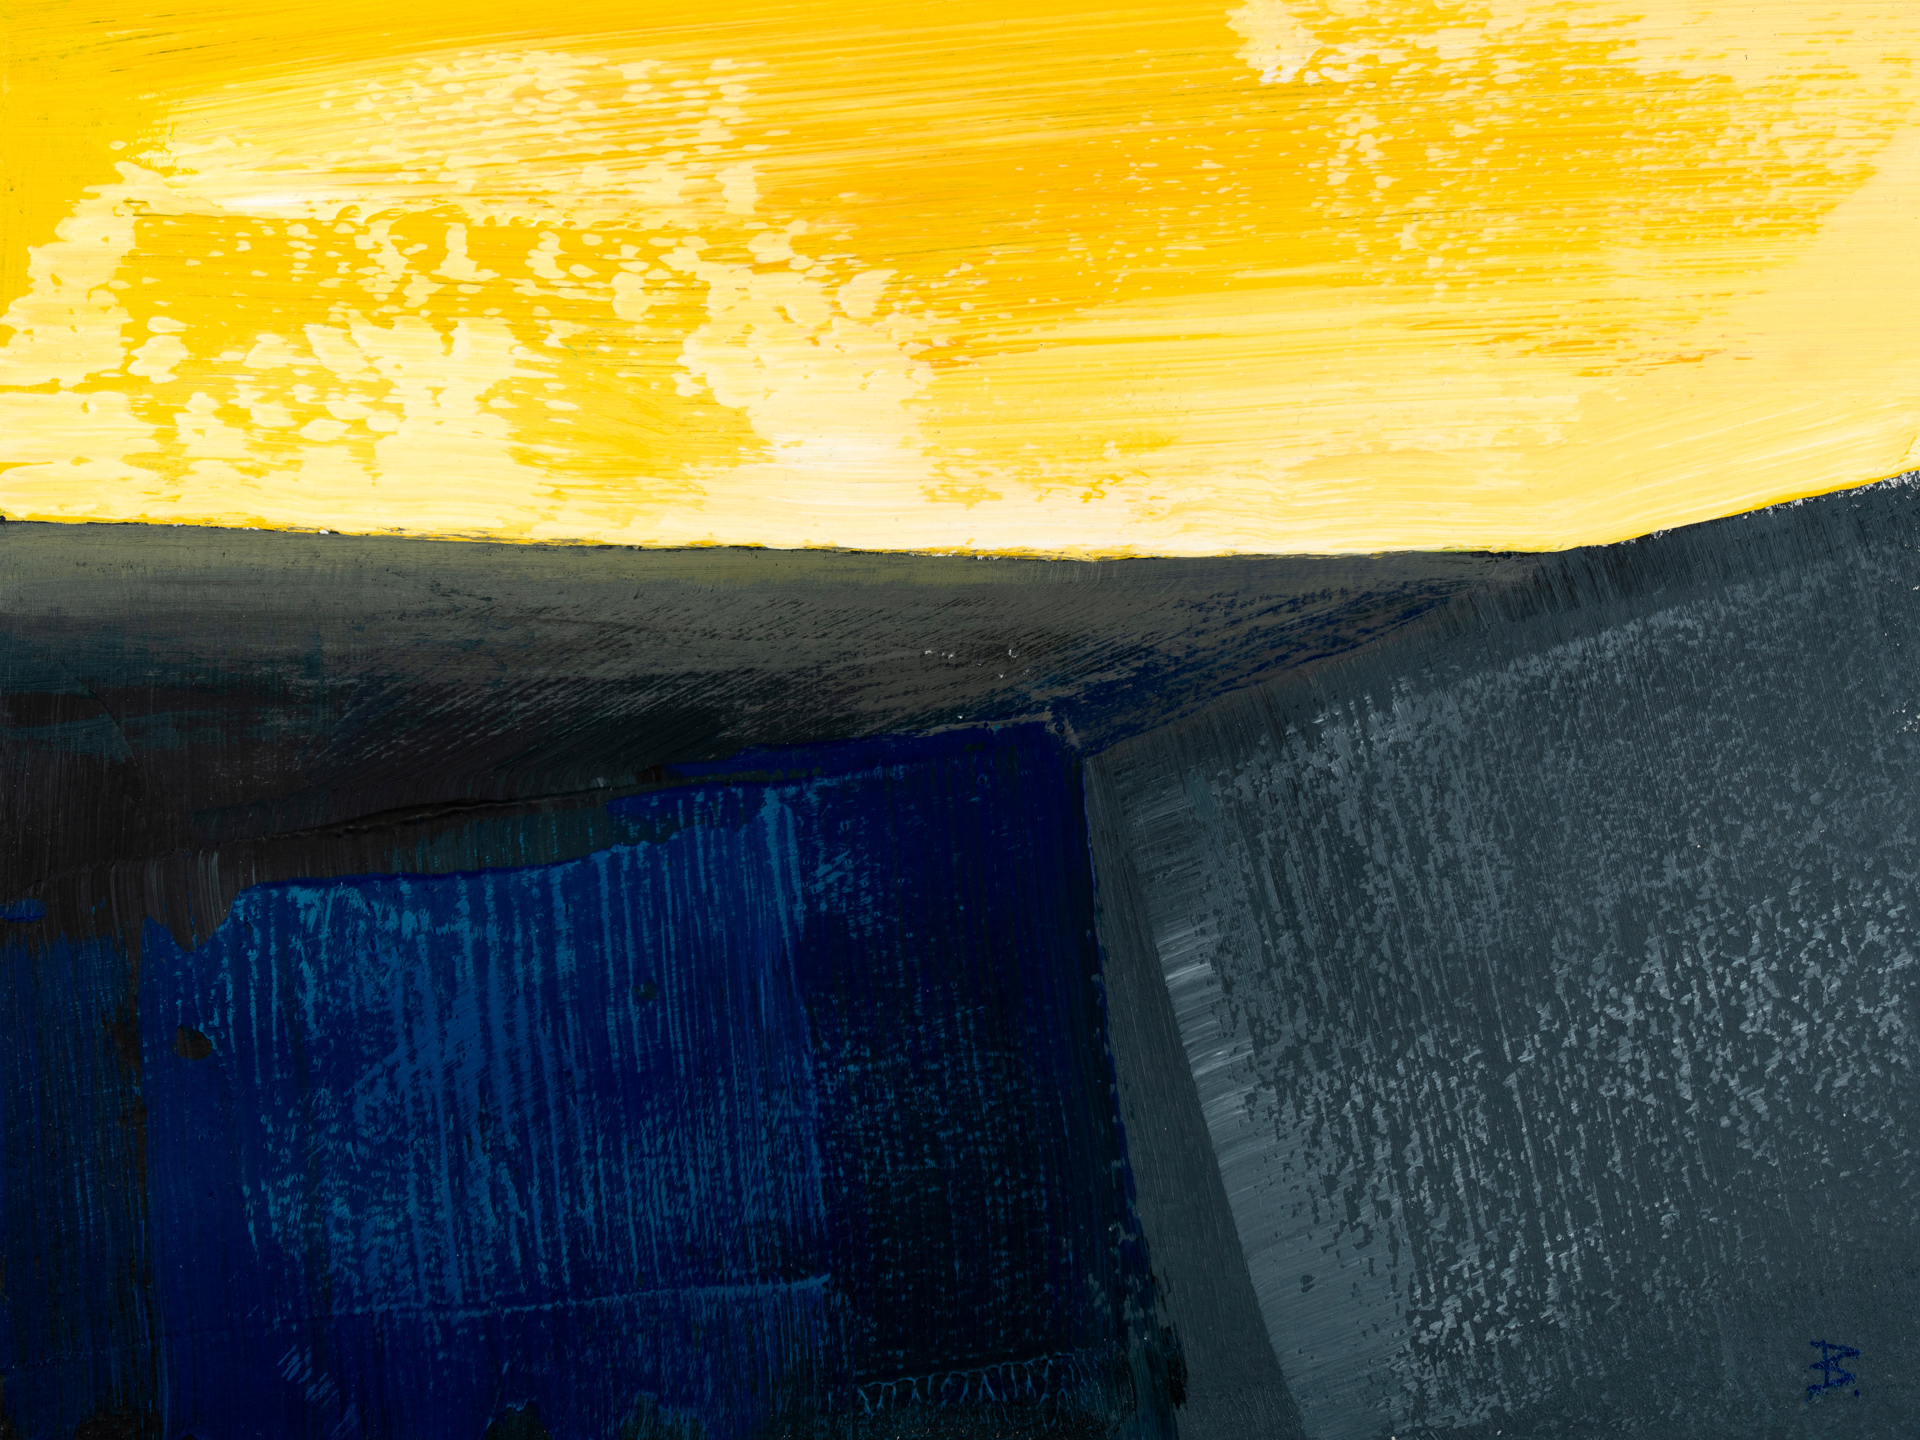 Blue Gray and Yellow 10220 3, 24x32, © Ernest Bisaev